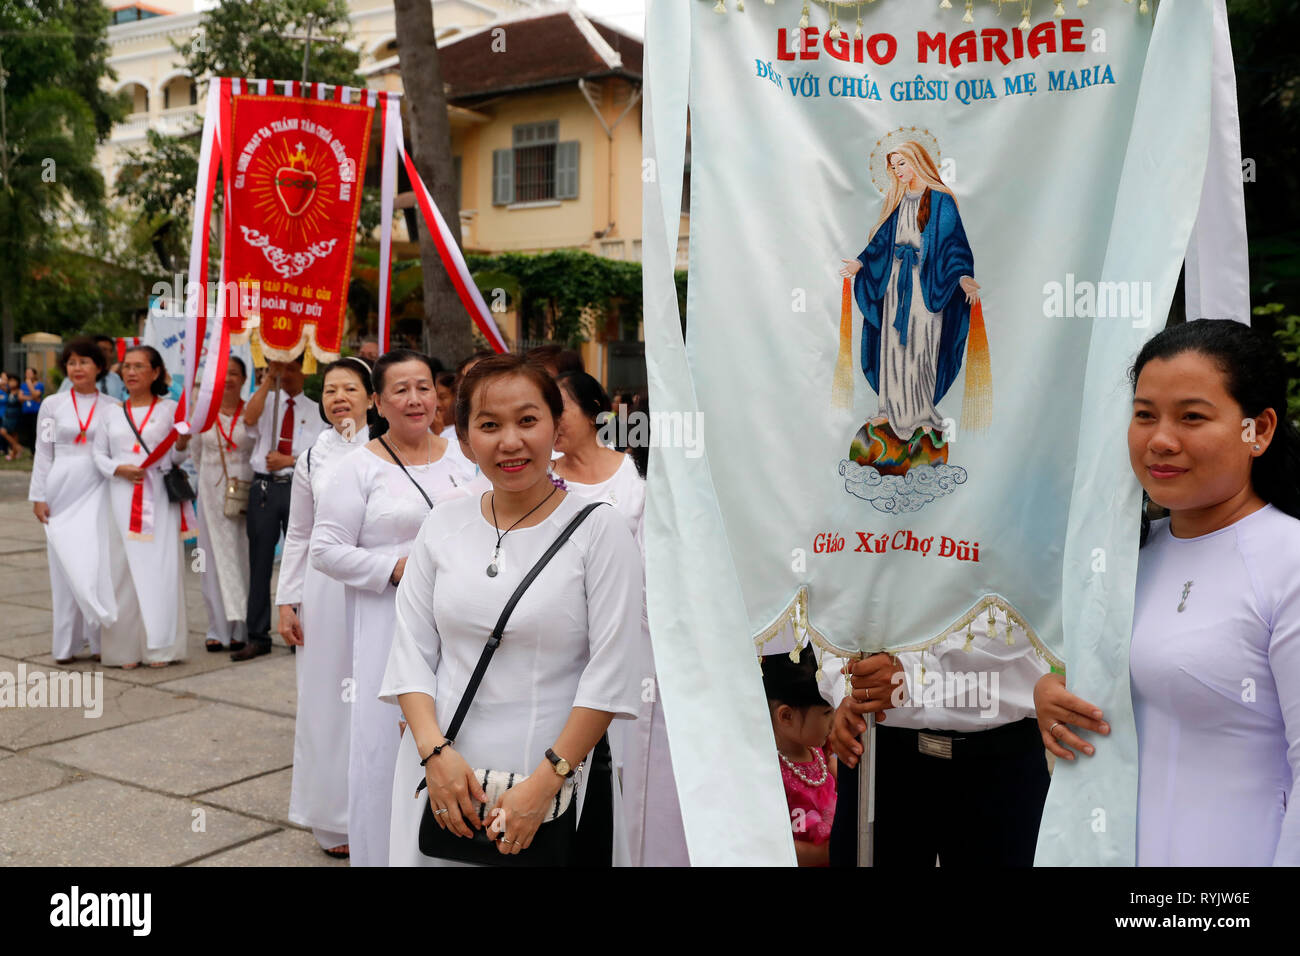 St Philip church ( Huyen Sy Church ).  The feast of the Assumption of the Virgin Mary. Procession.  Ho Chi Minh City.  Vietnam. - Stock Image